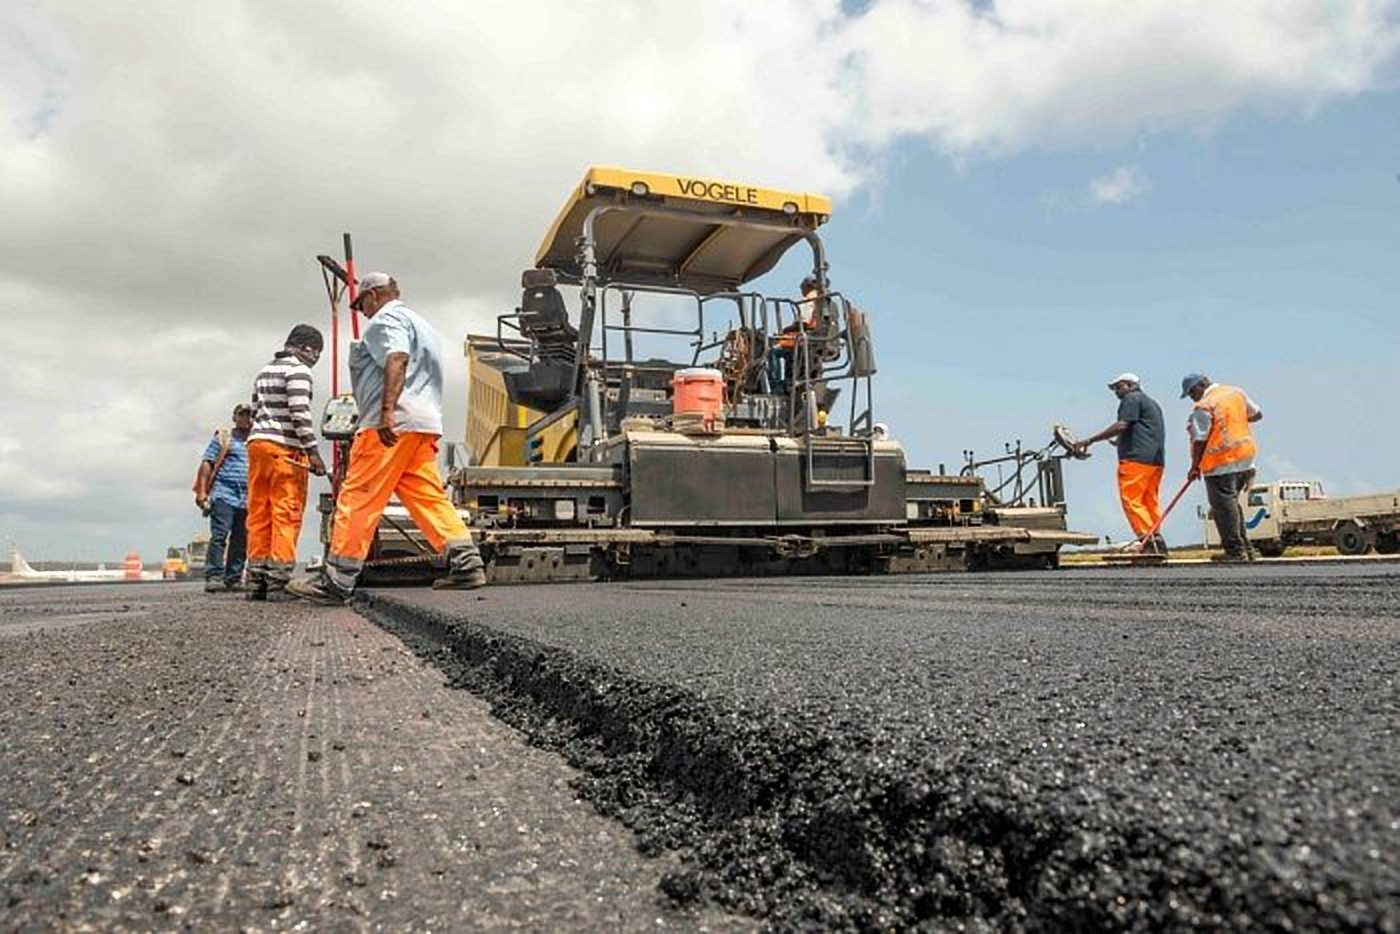 Construction underway at a road in Uganda. President Museveni has urged local contractors to end the Chinese dominance